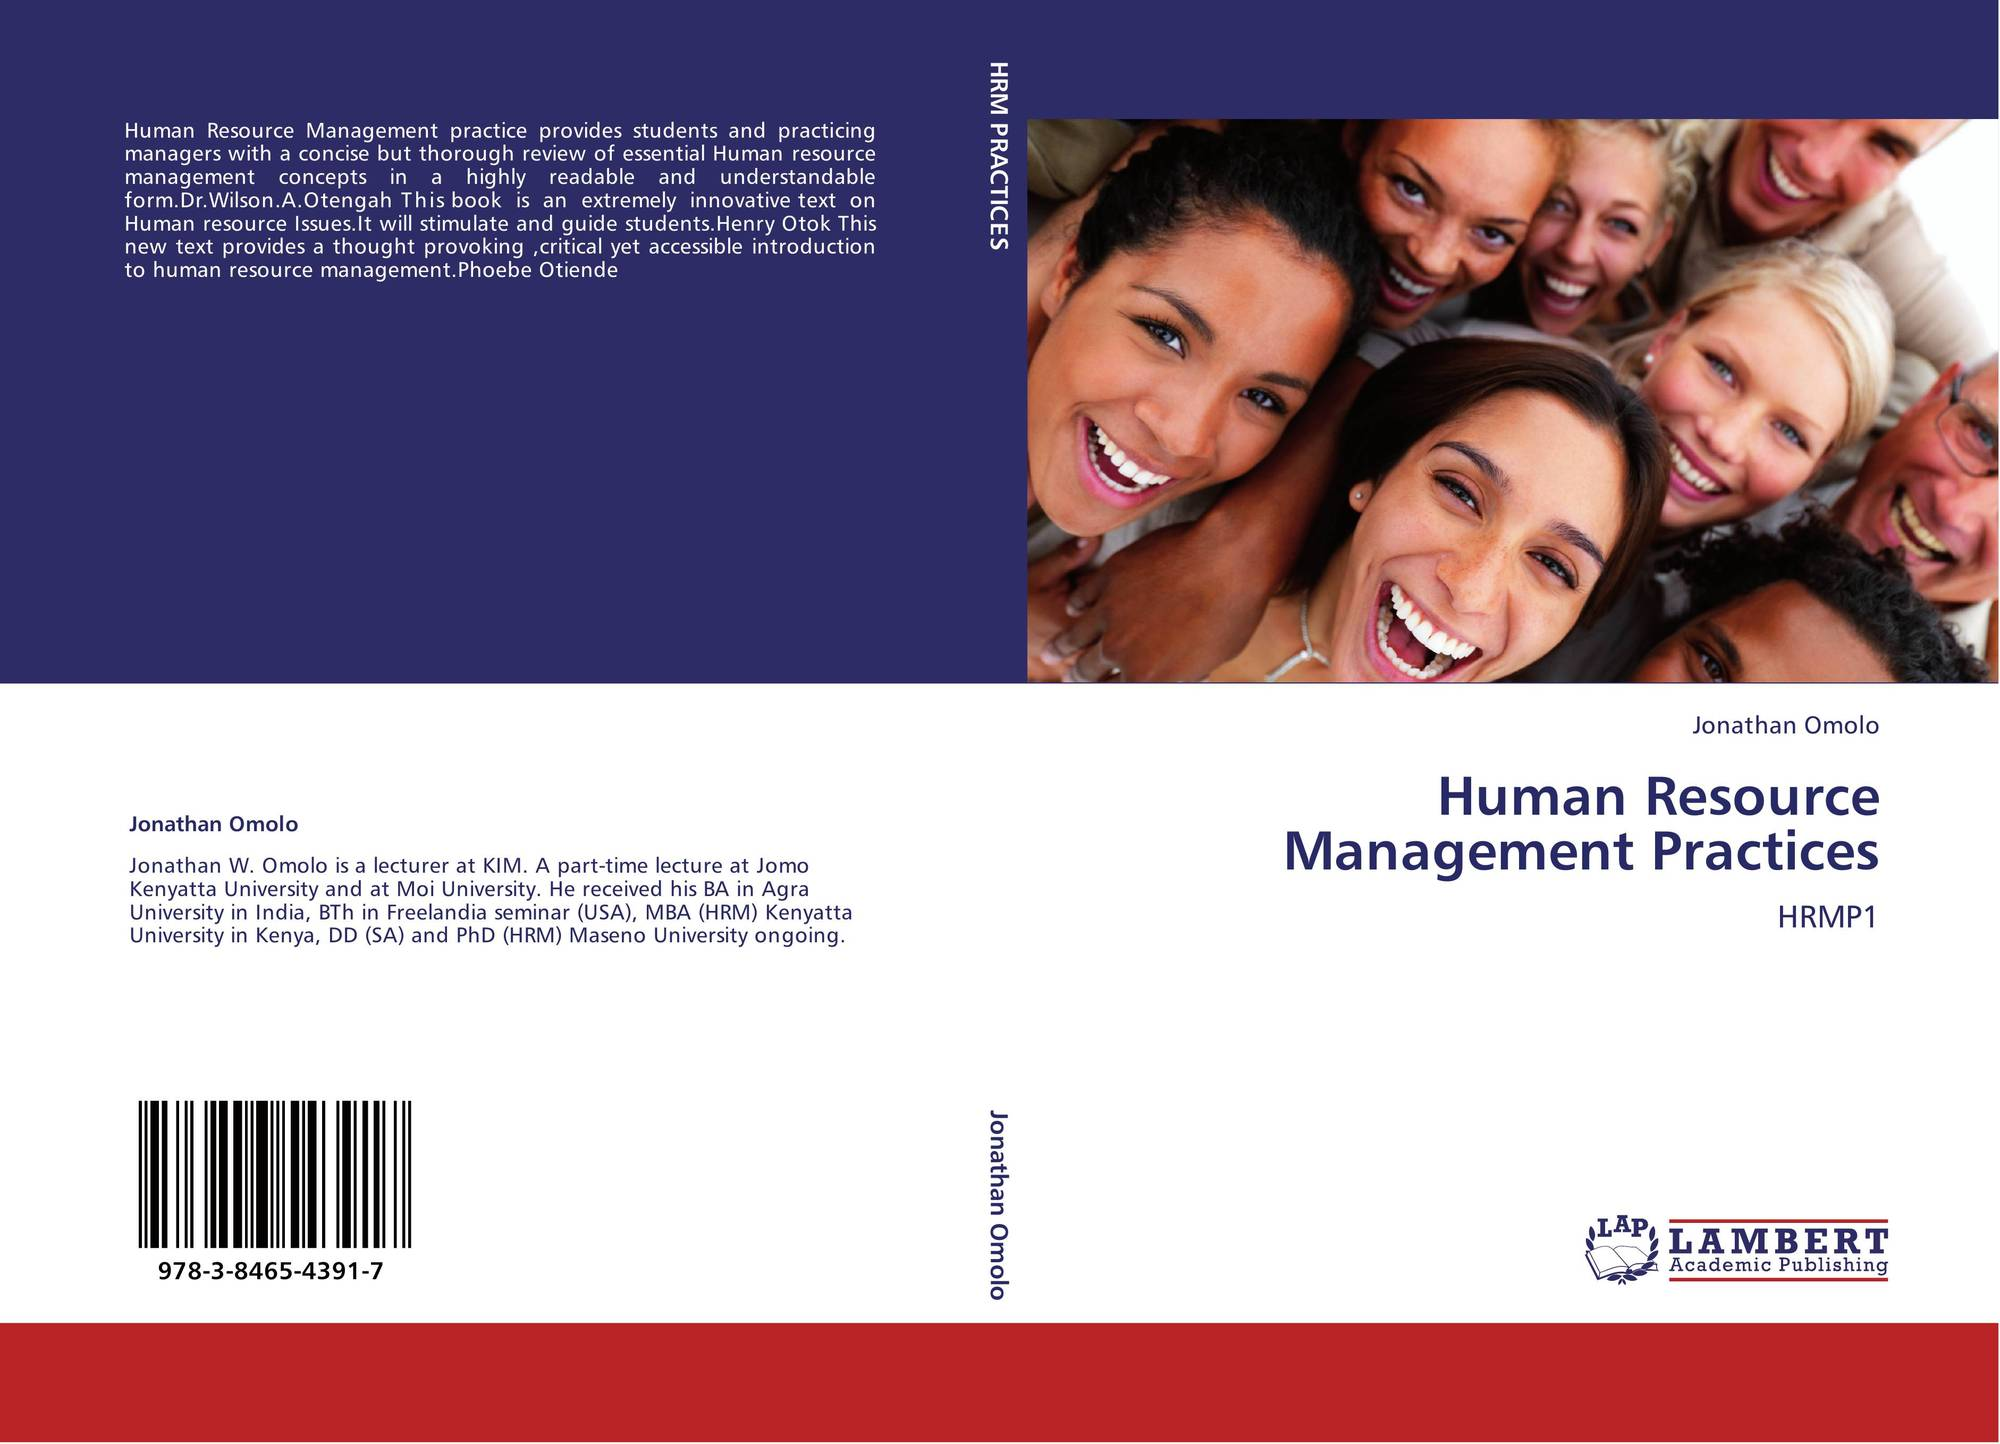 human resource management 3 Human resource management brings out the important values of trust, care, teamwork, encouragement and development which help the government meet the principle of being a good employer and thereby motivating staff to give their best.